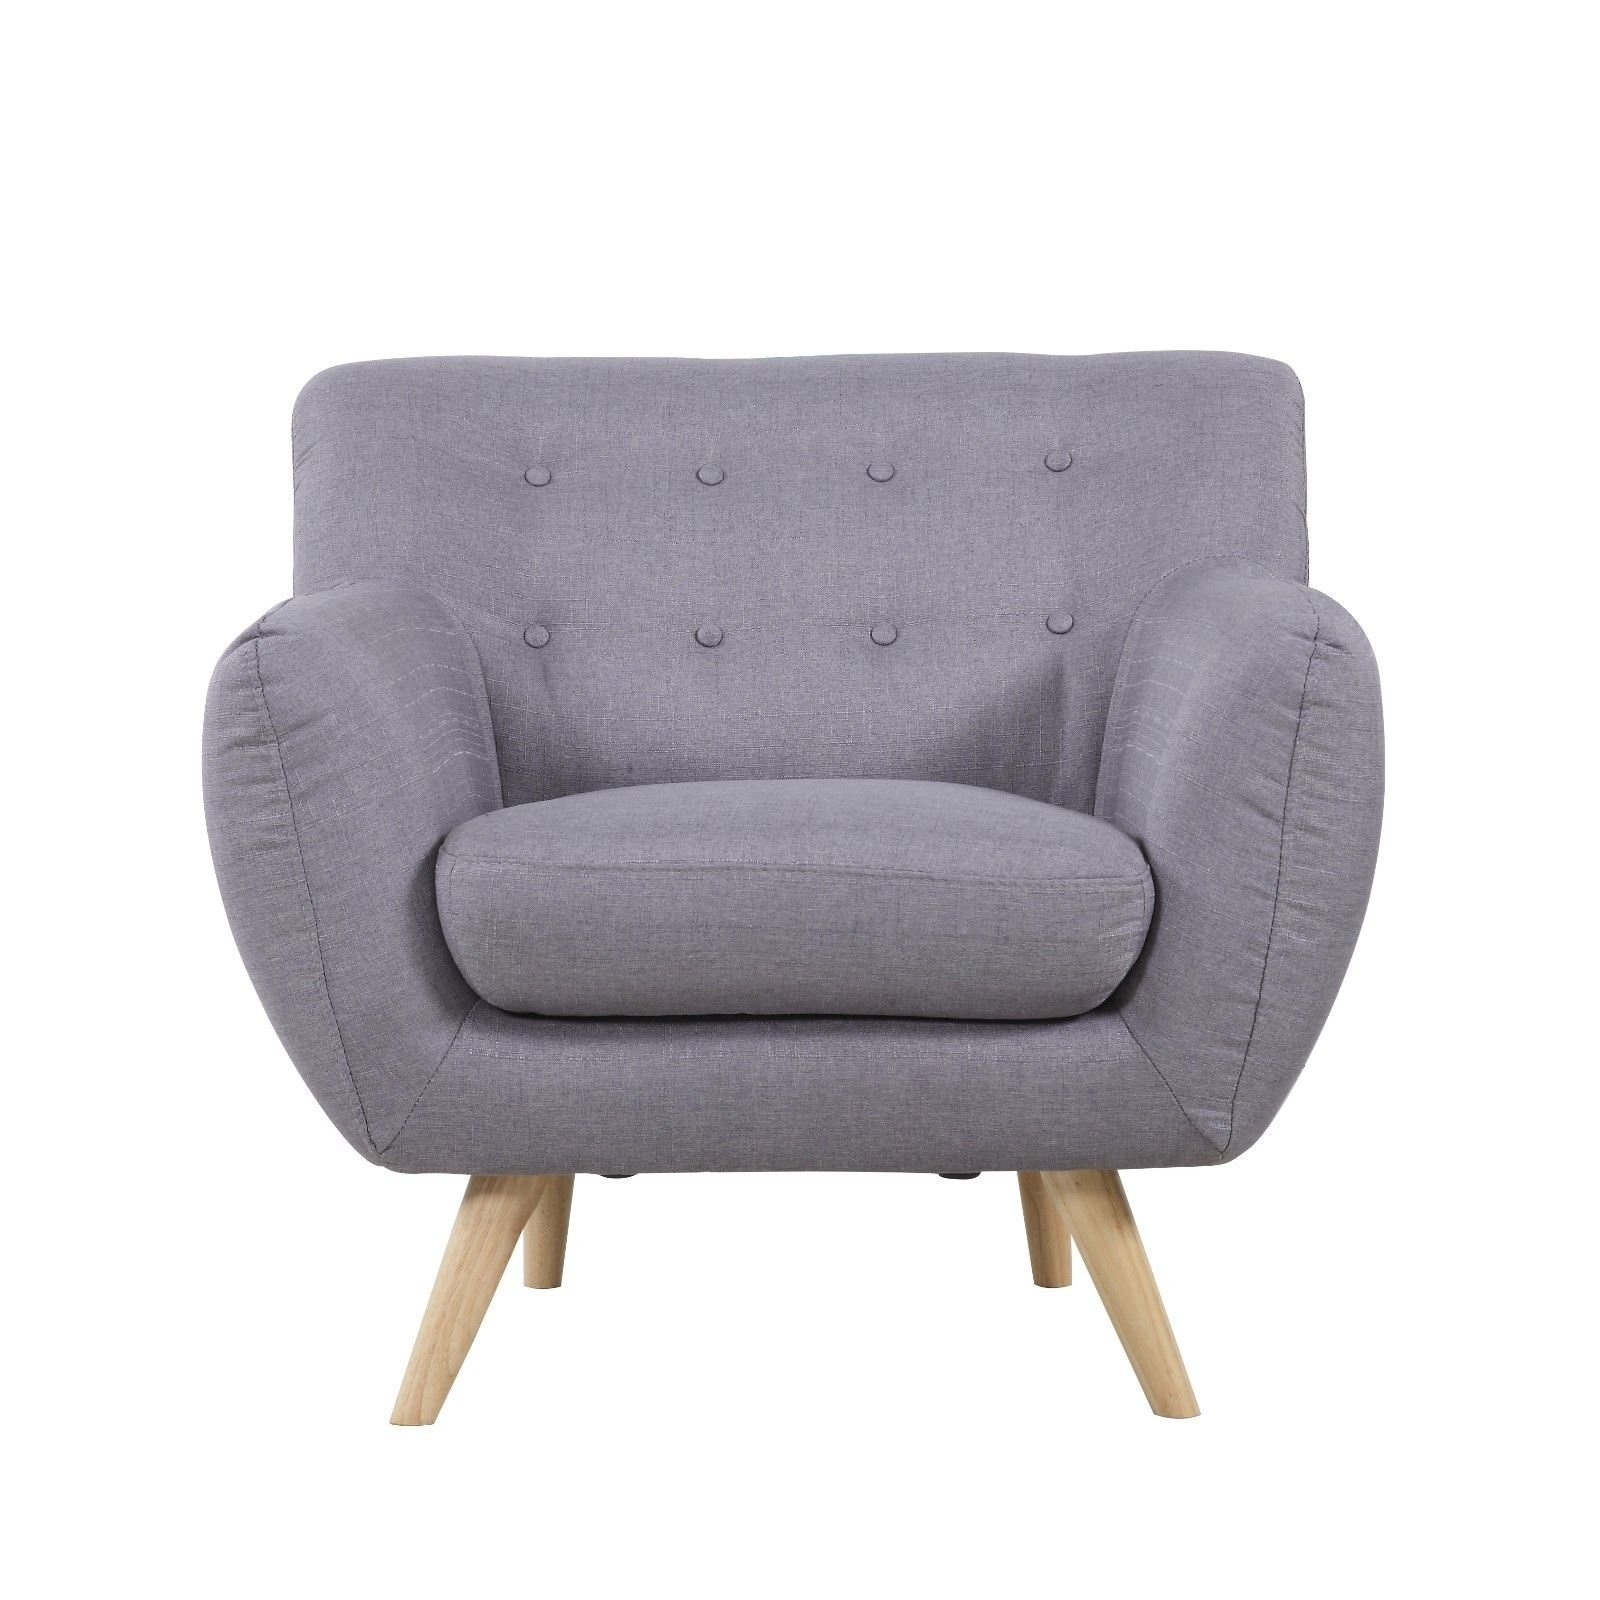 Mid Century Modern Accent Chair Details About Mid Century Modern Tufted Button Large Living Room Accent Chair Armchair Grey